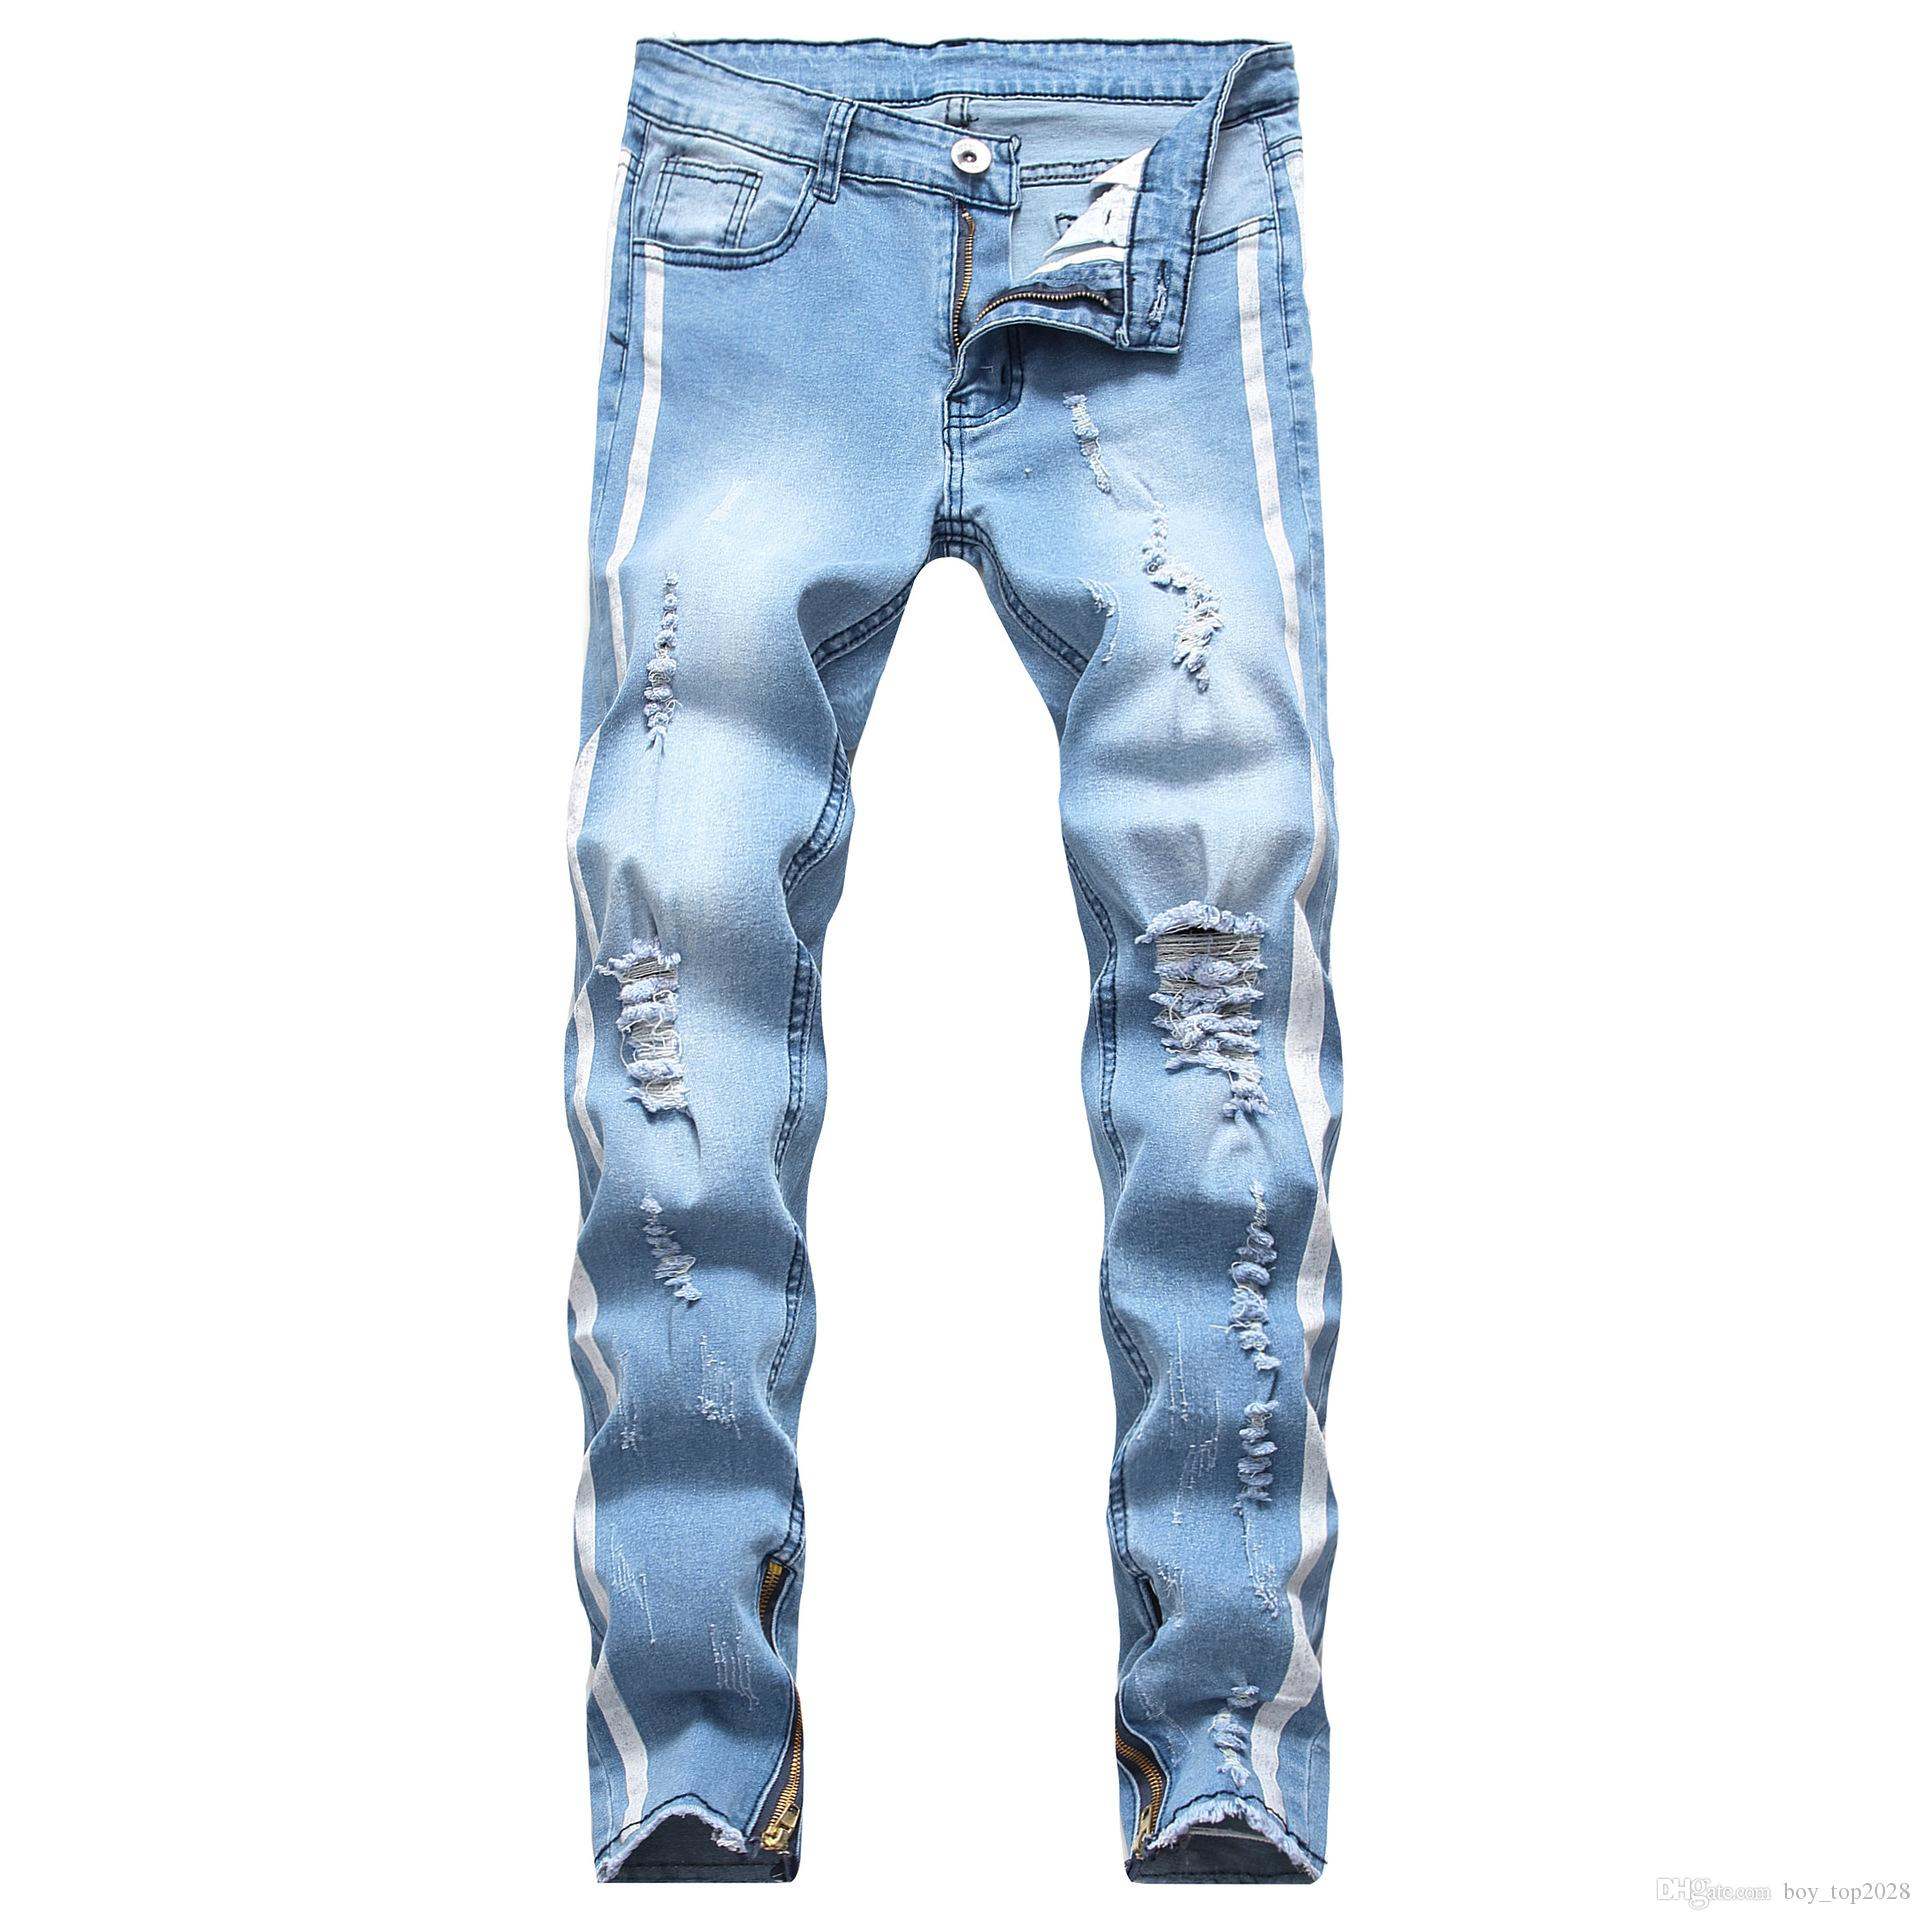 S-3XL Distressed Ripped Jeans Slim Fit Motorcycle Biker Denim For Men Fashion Designer Hip Hop Mens Jeans Good Quality